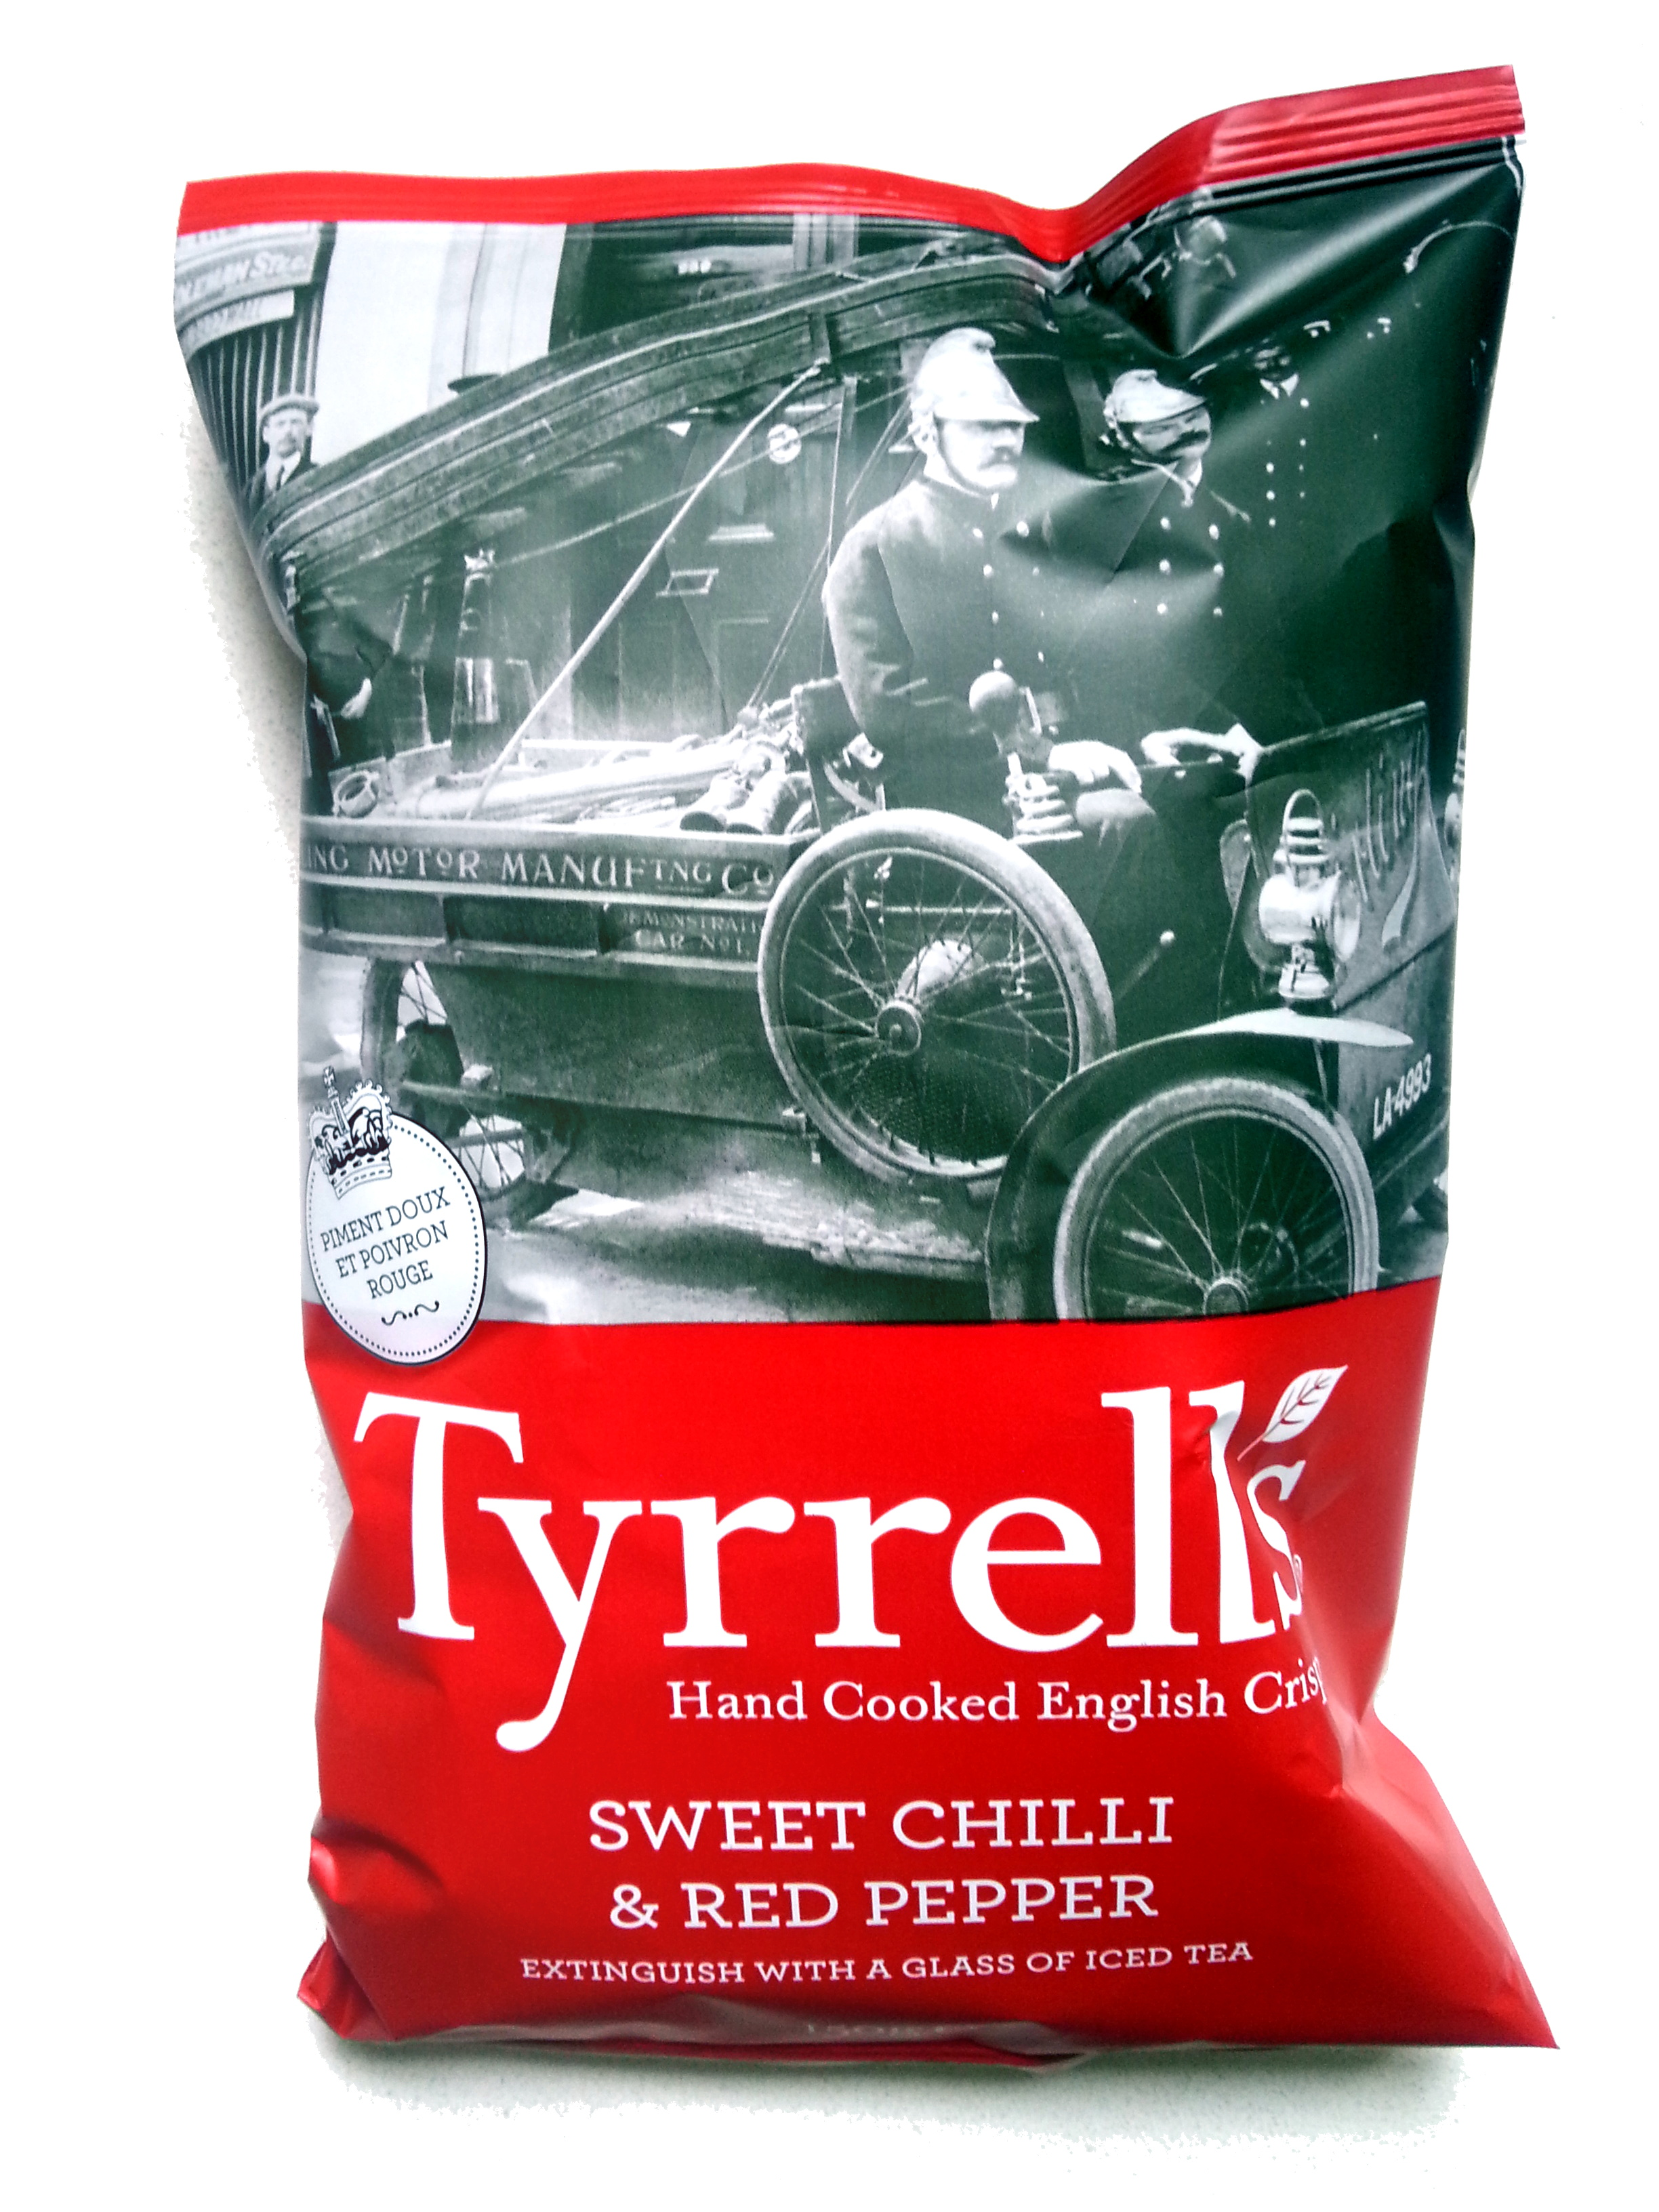 Hand cooked English crisps sweet chilli & Red Pepper - Produit